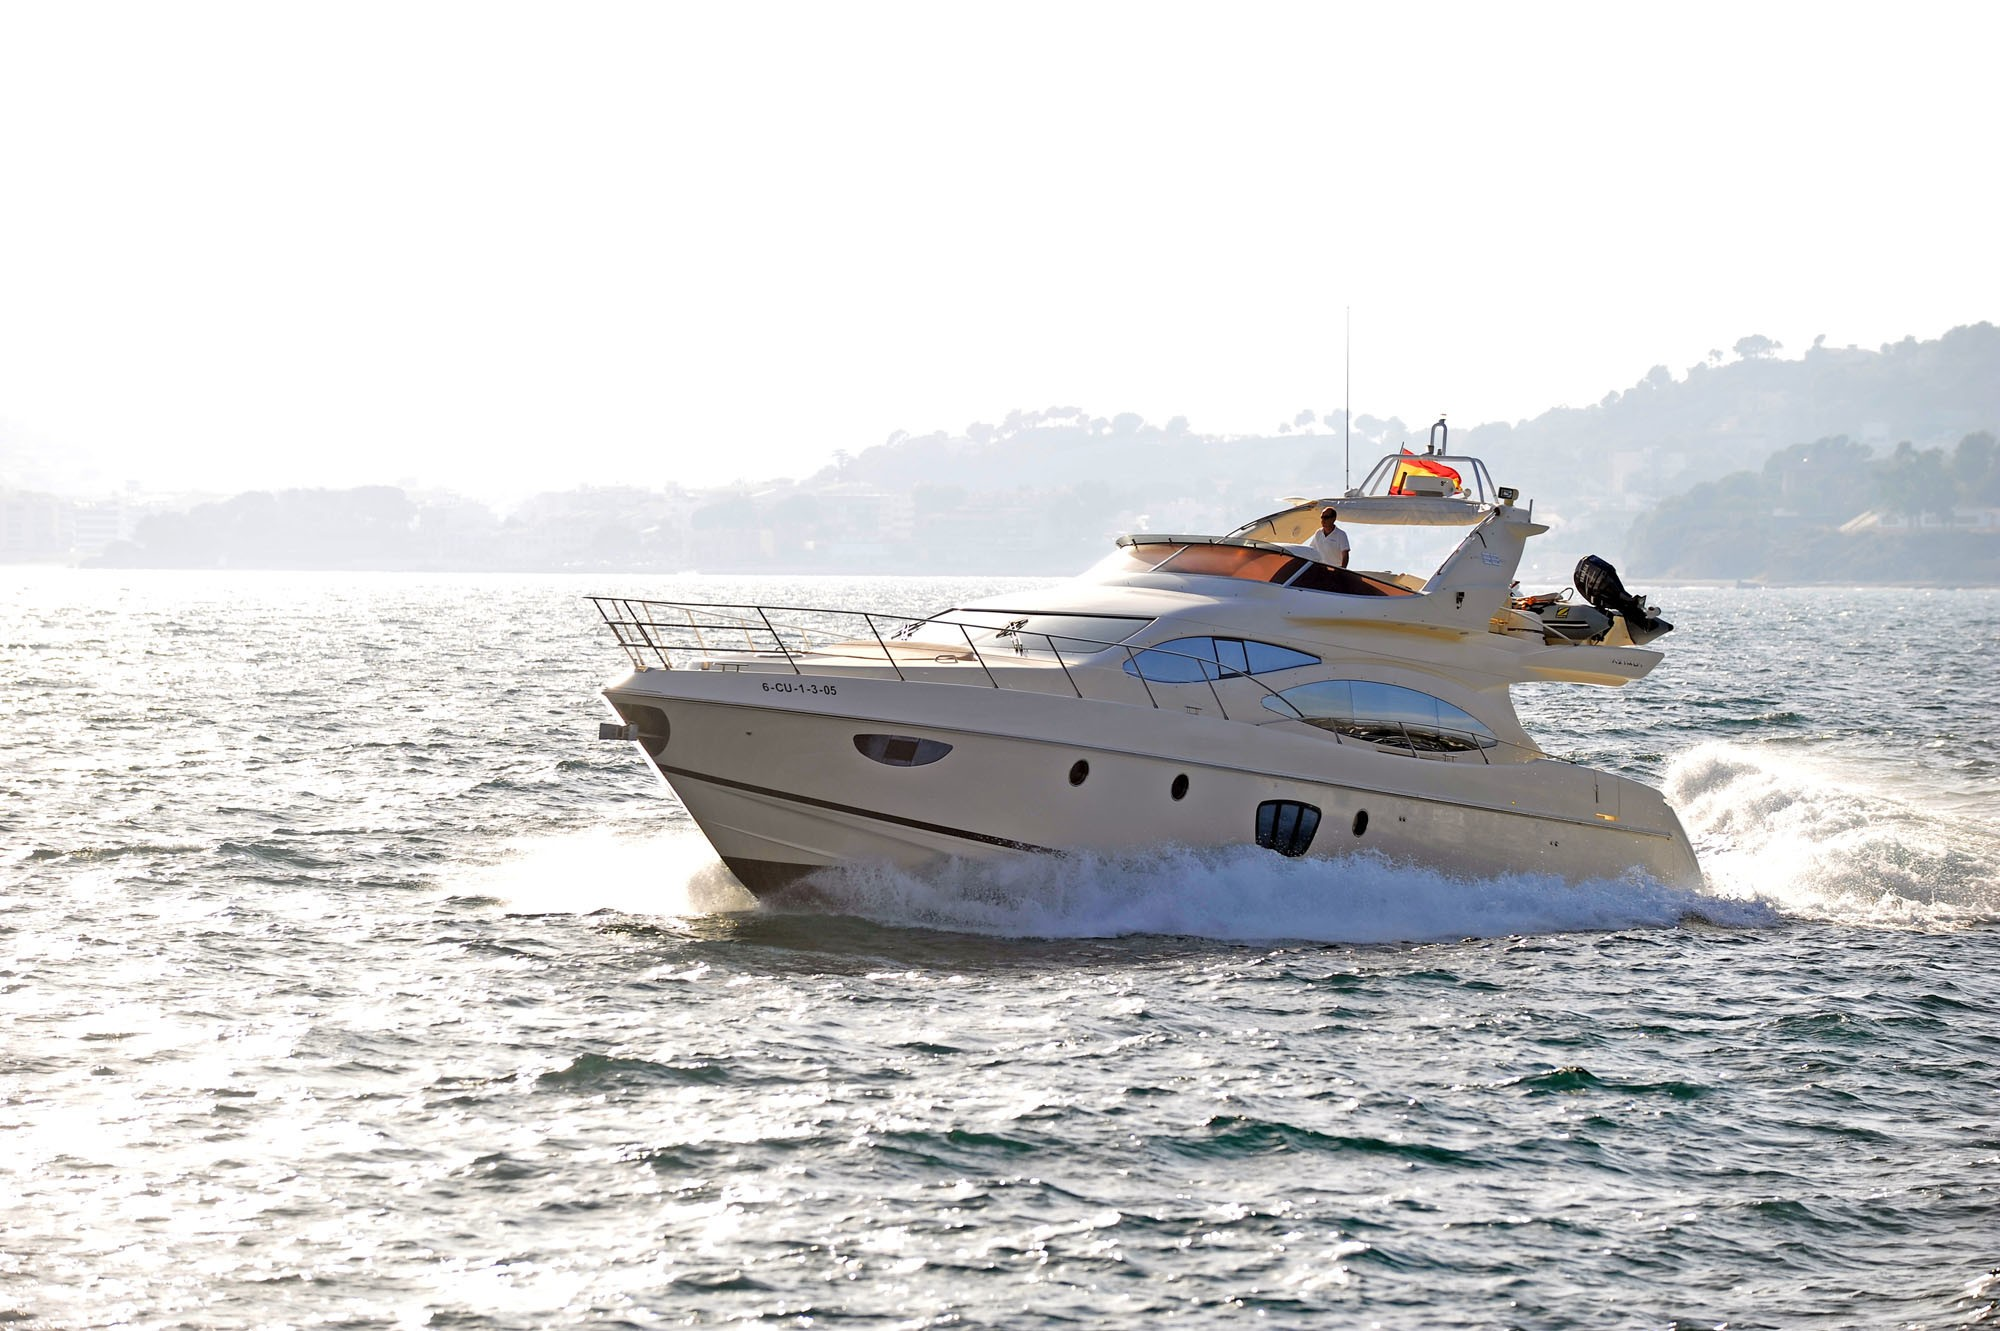 The 21m Yacht AZUCENA MARE